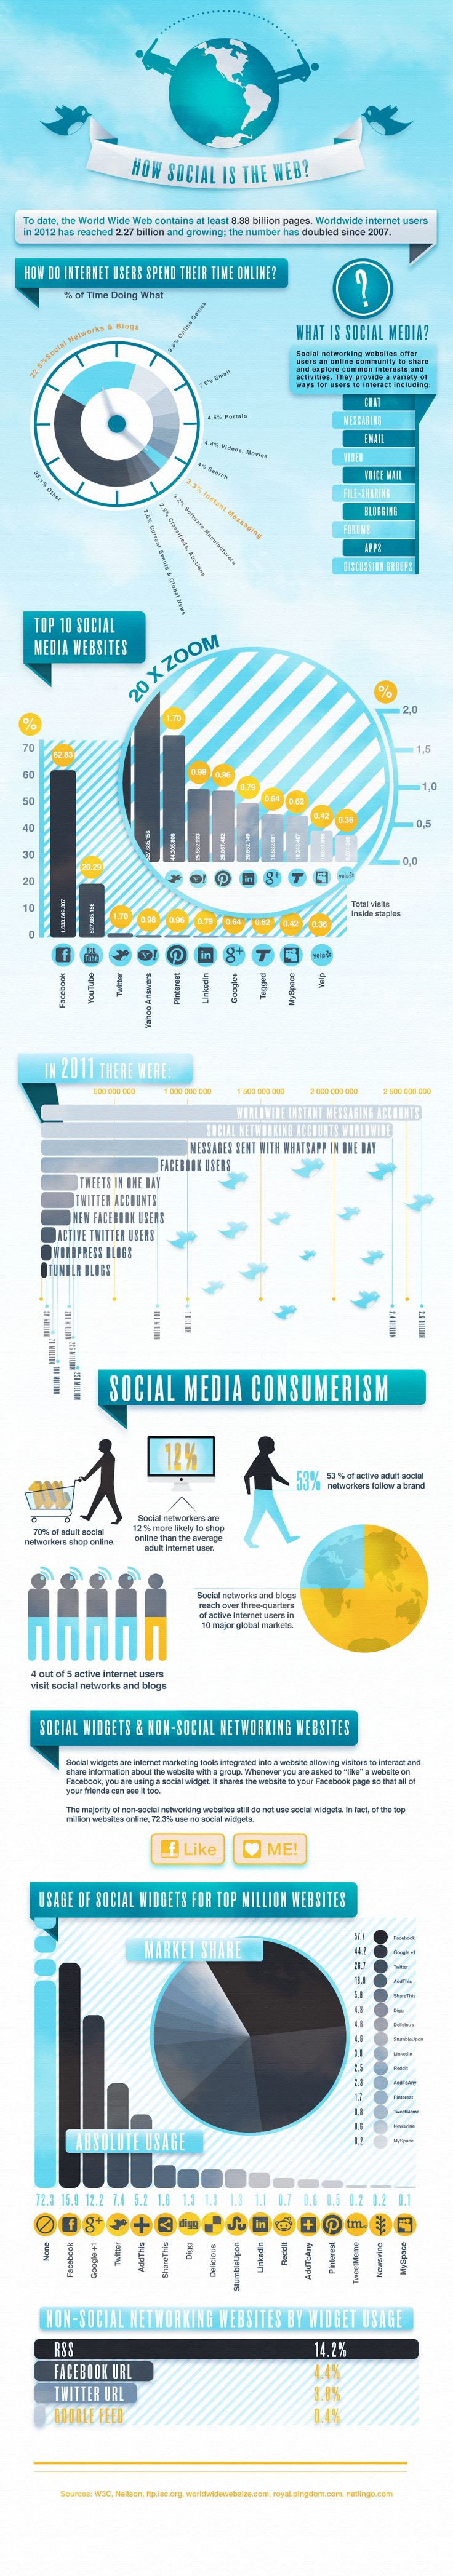 How Social Is The Web? [infographic]